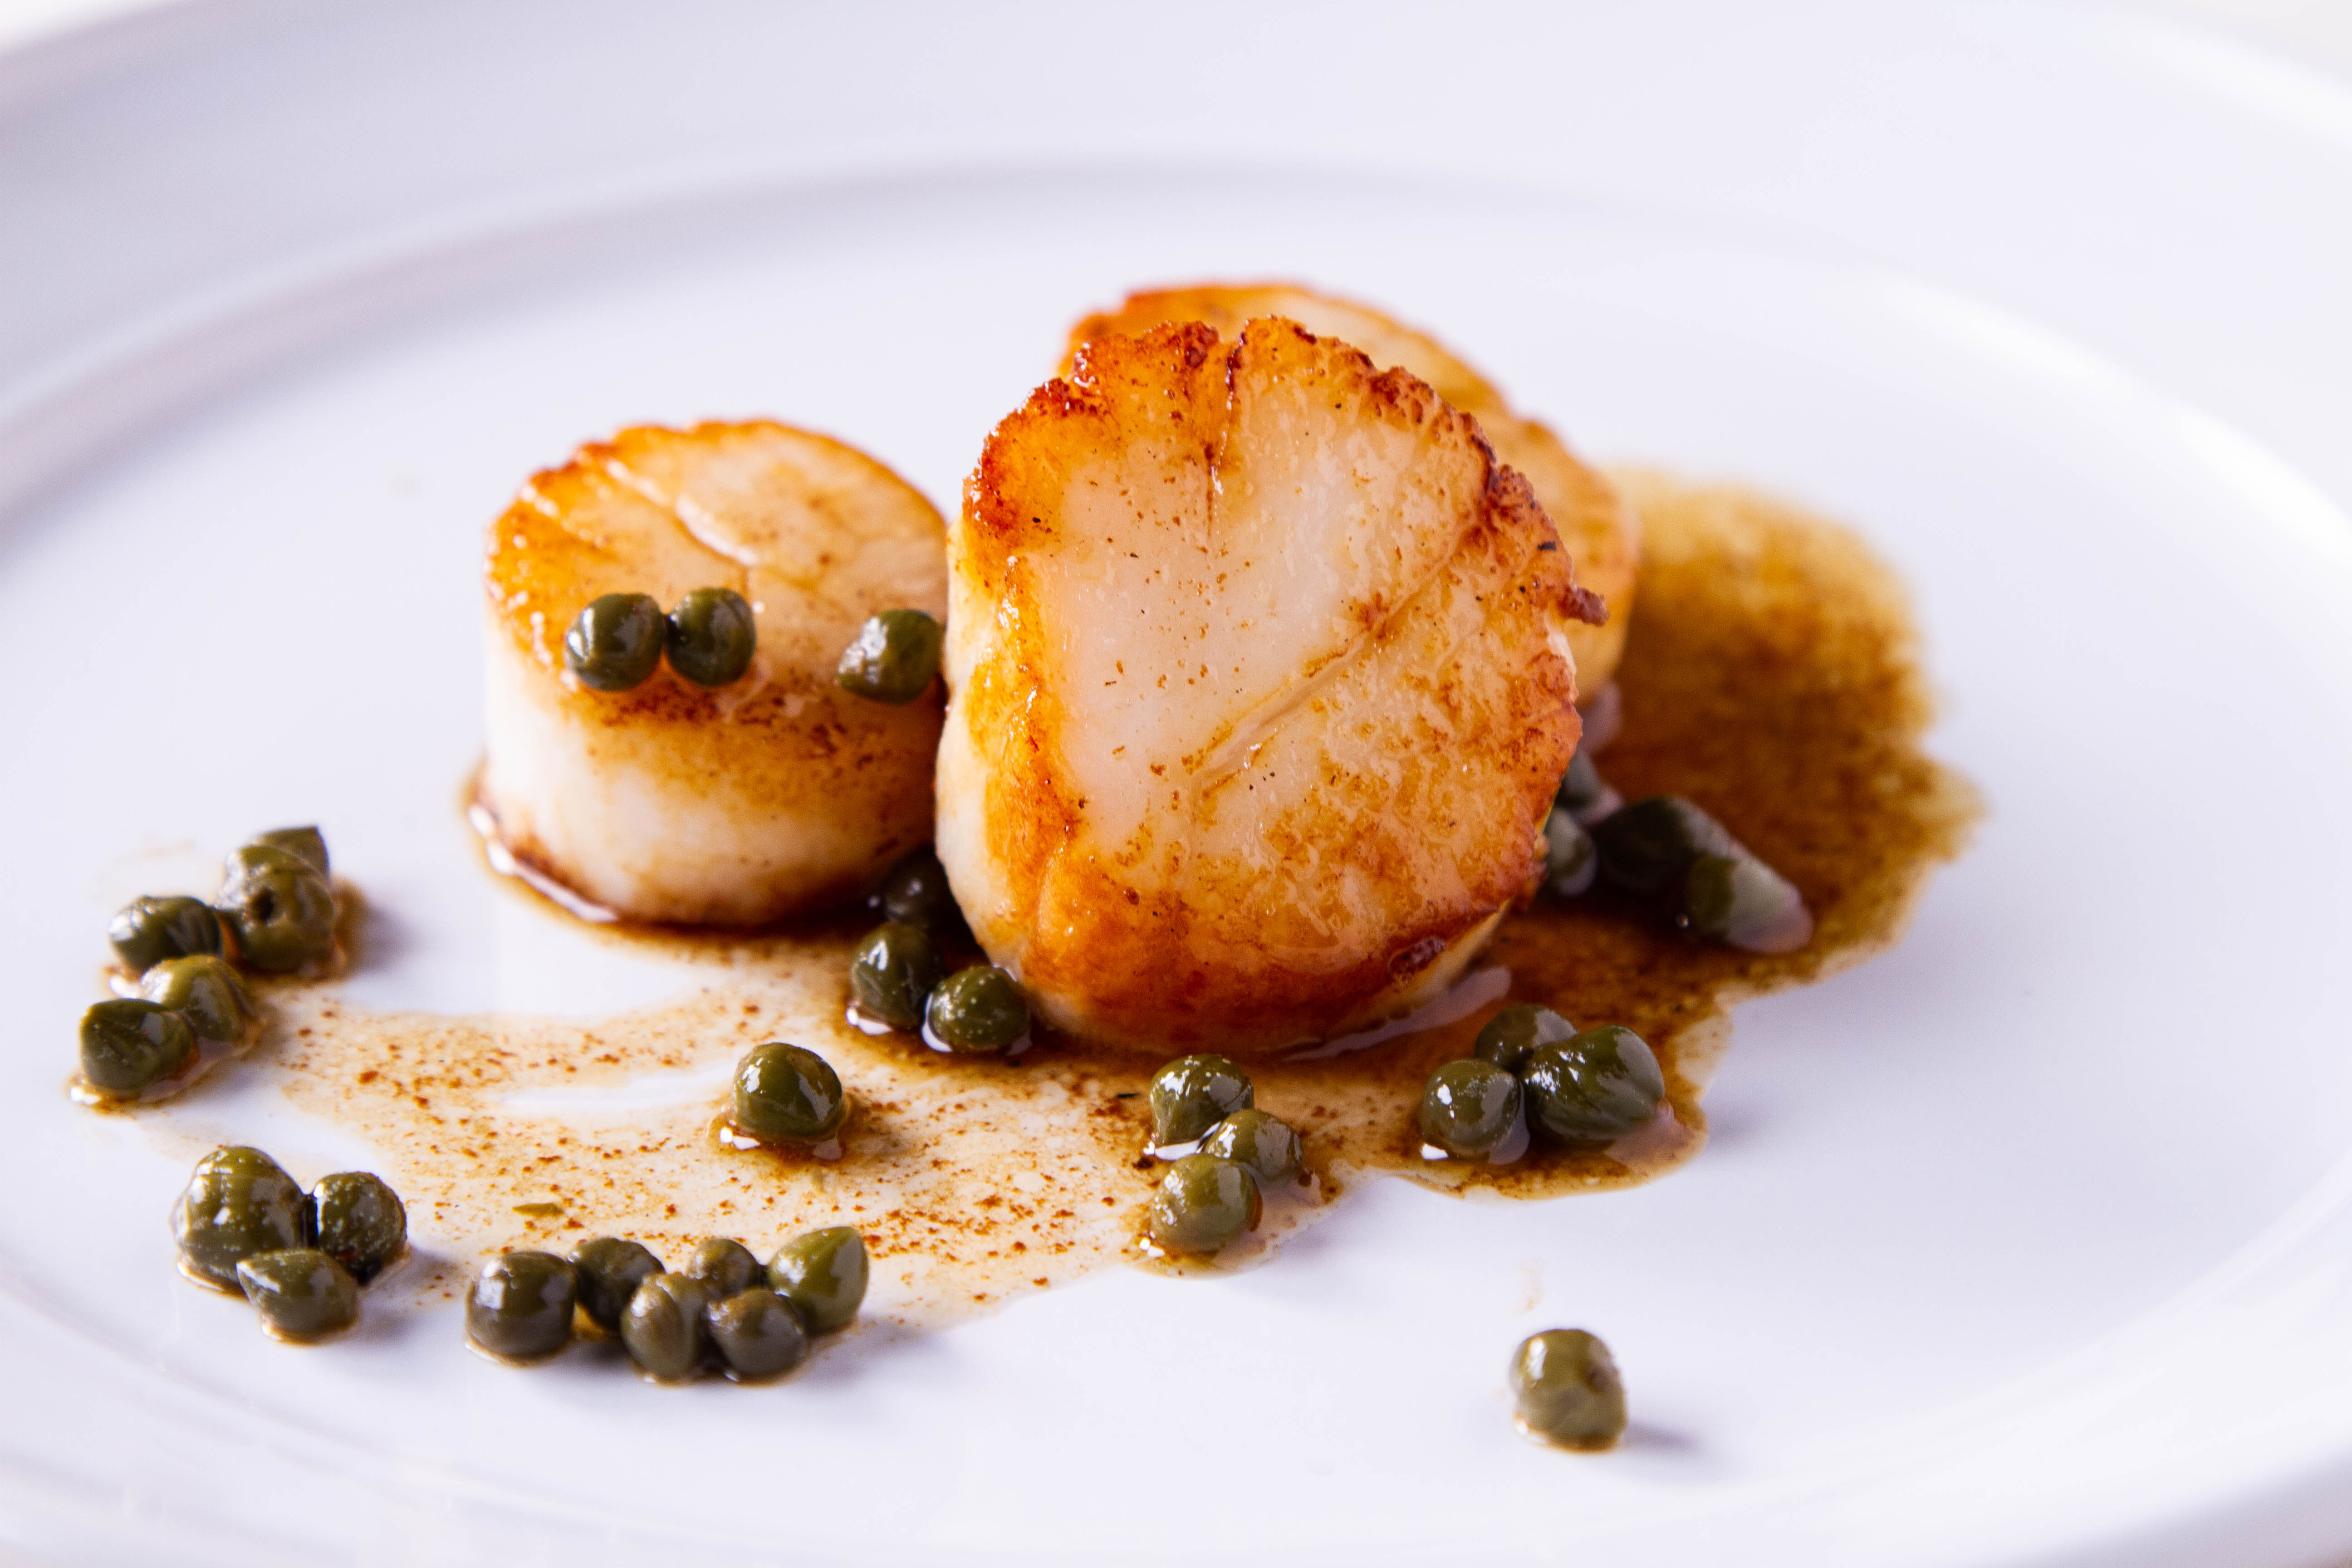 Pan seared scallops recipe below